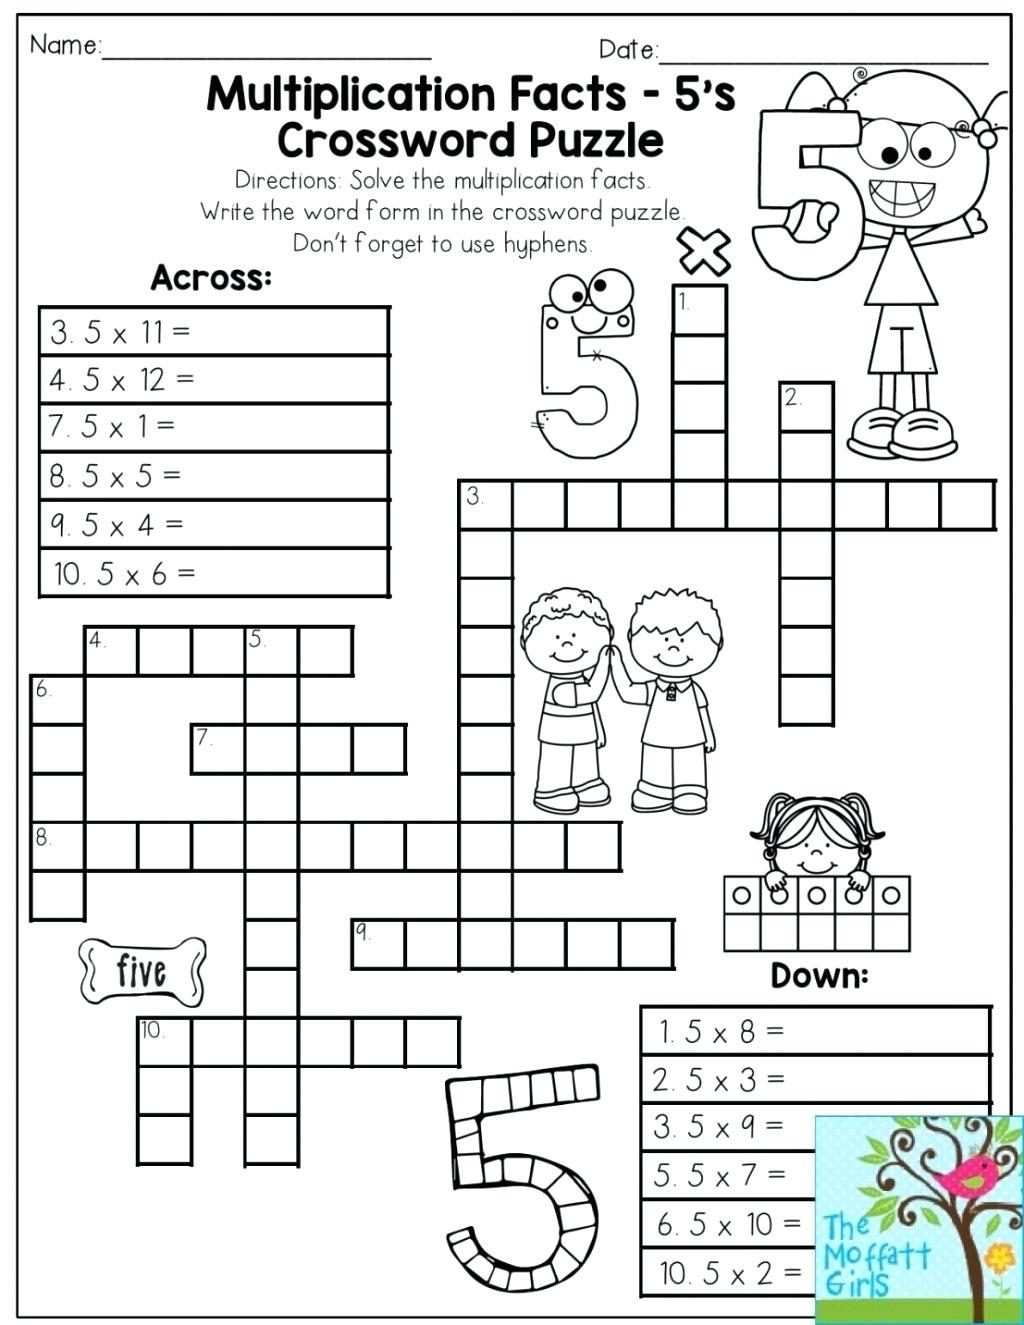 Printable Math Puzzles 5Th Grade Maths Ksheets Middle School Pdf Fun - Printable Puzzles Ks3